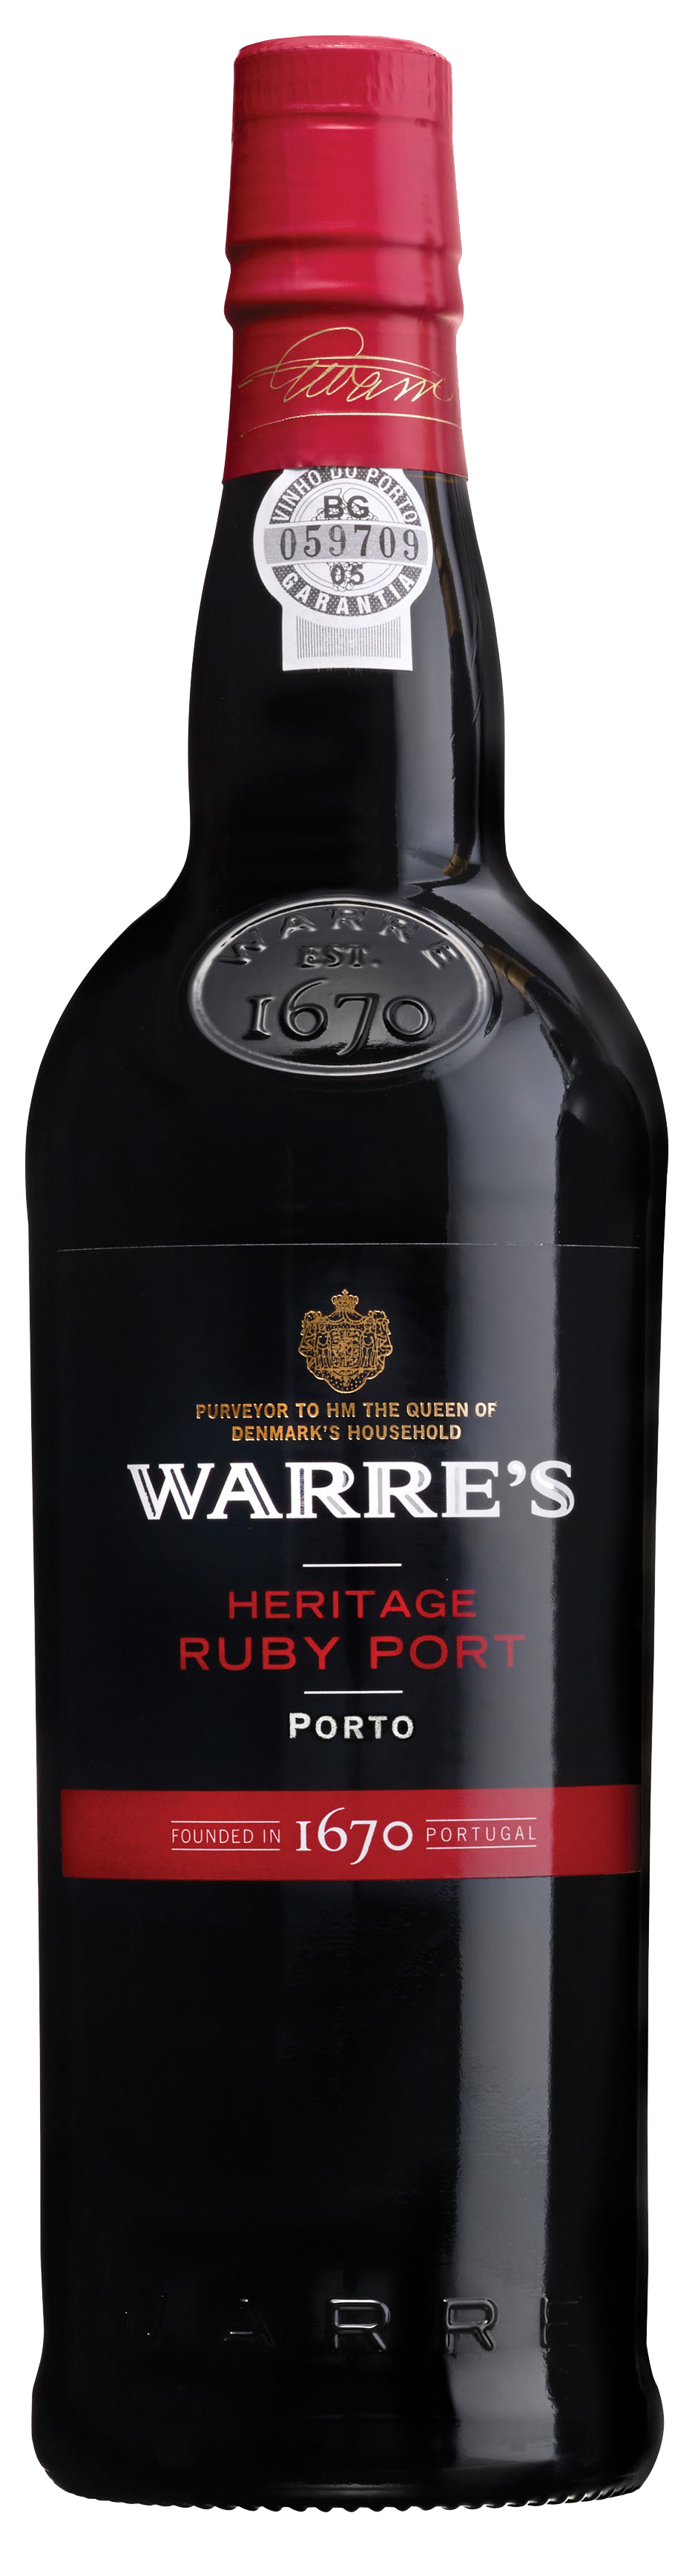 Warre's Heritage Ruby Port Bottle.jpg